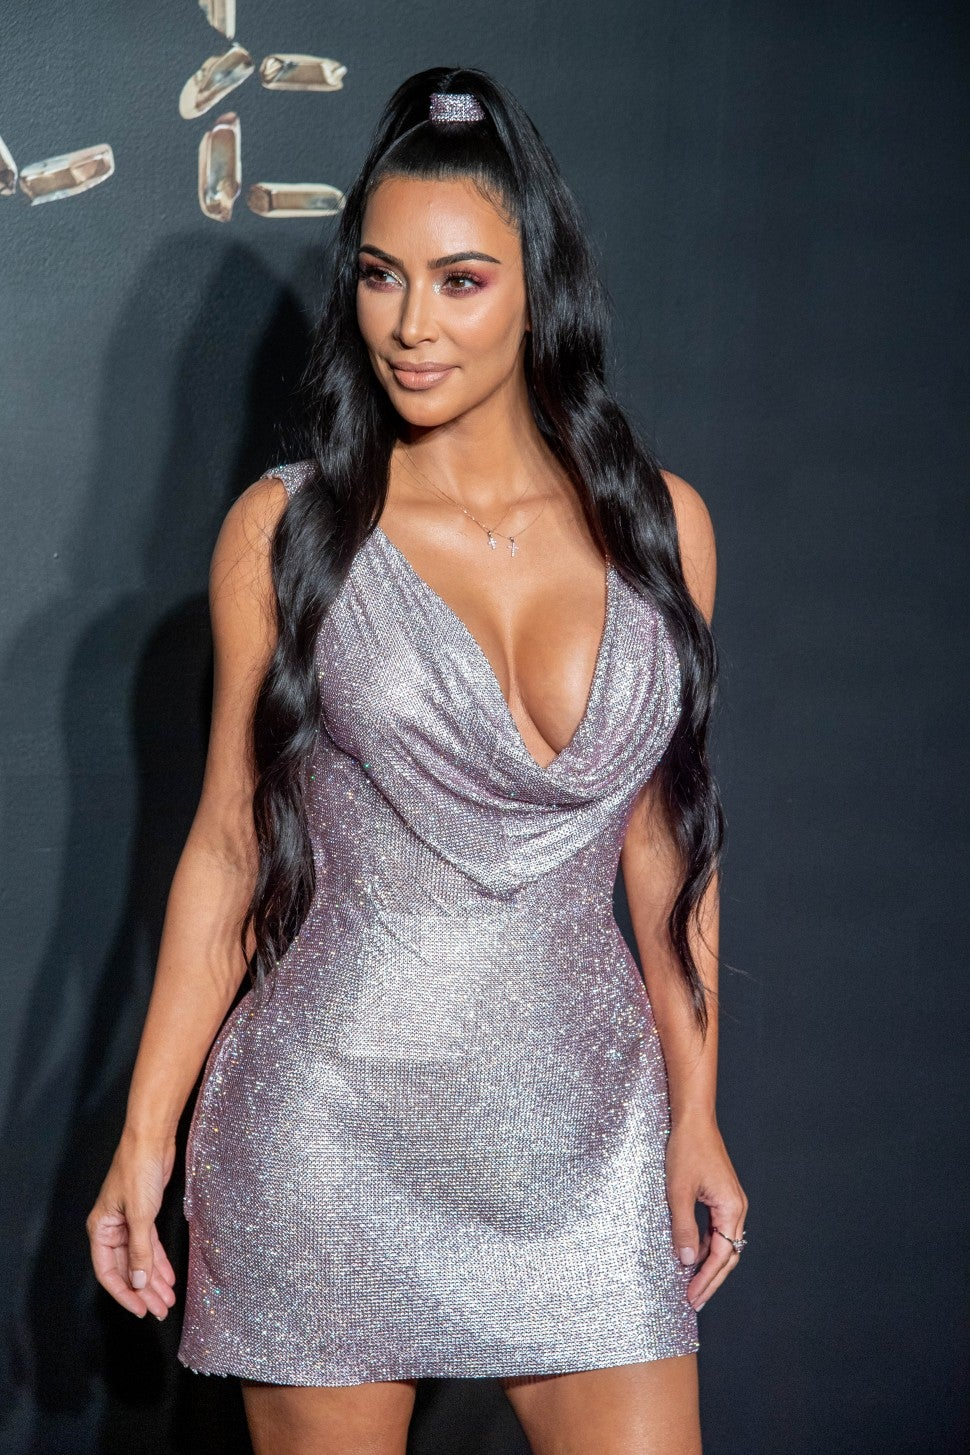 Kim Kardashian in sparkly silver dress